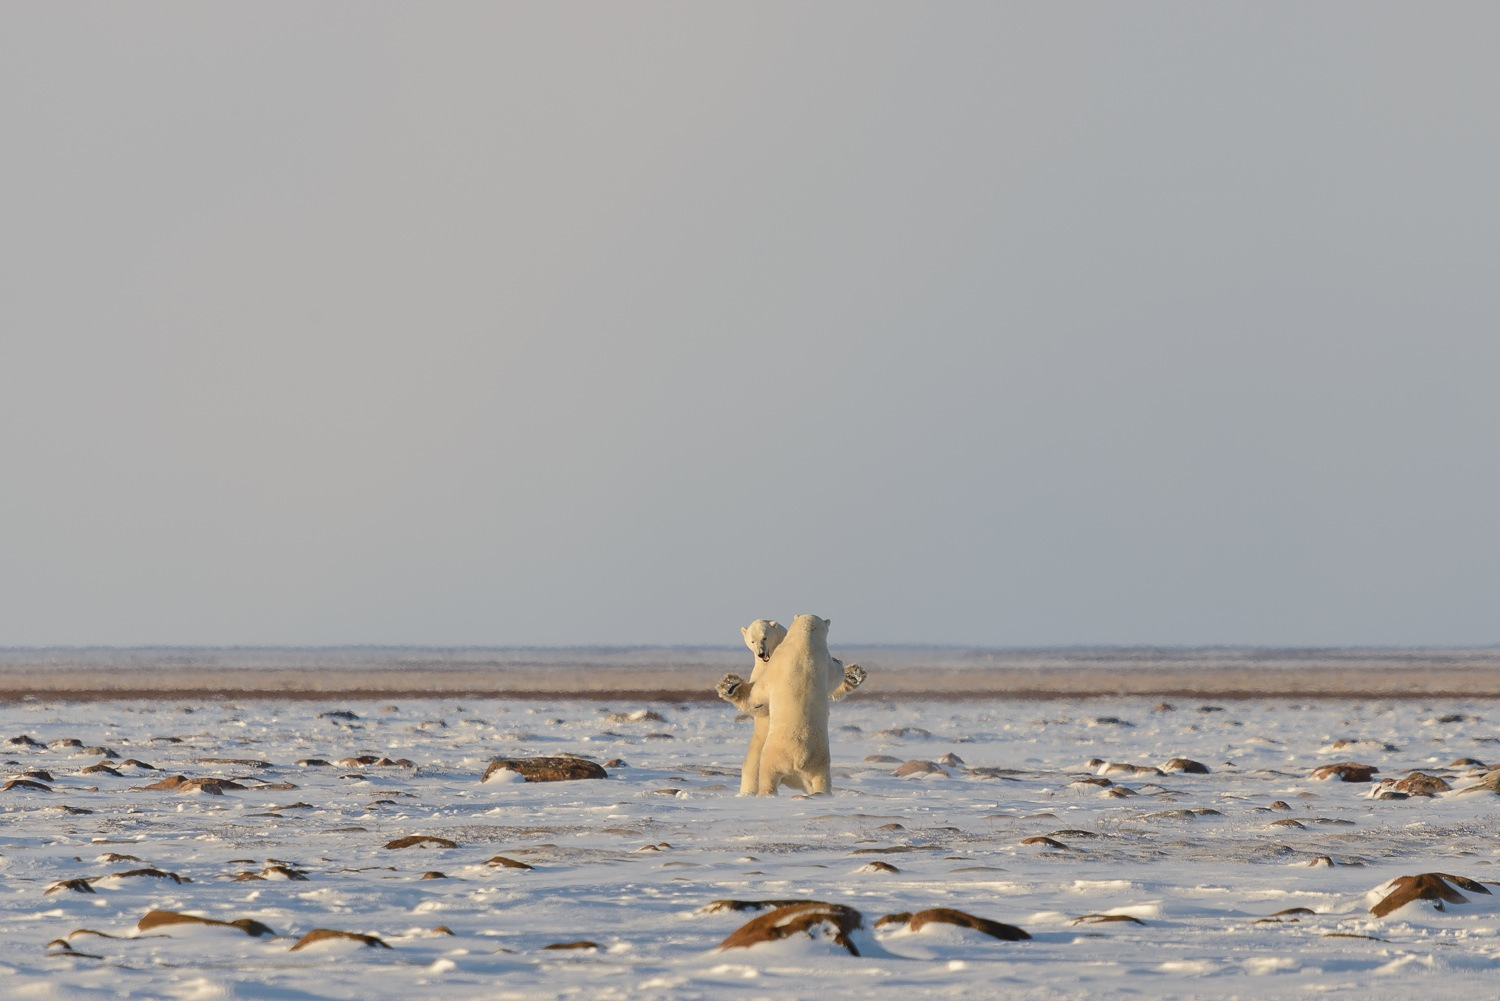 Male Polar Bears Sparring on the Tundra 4